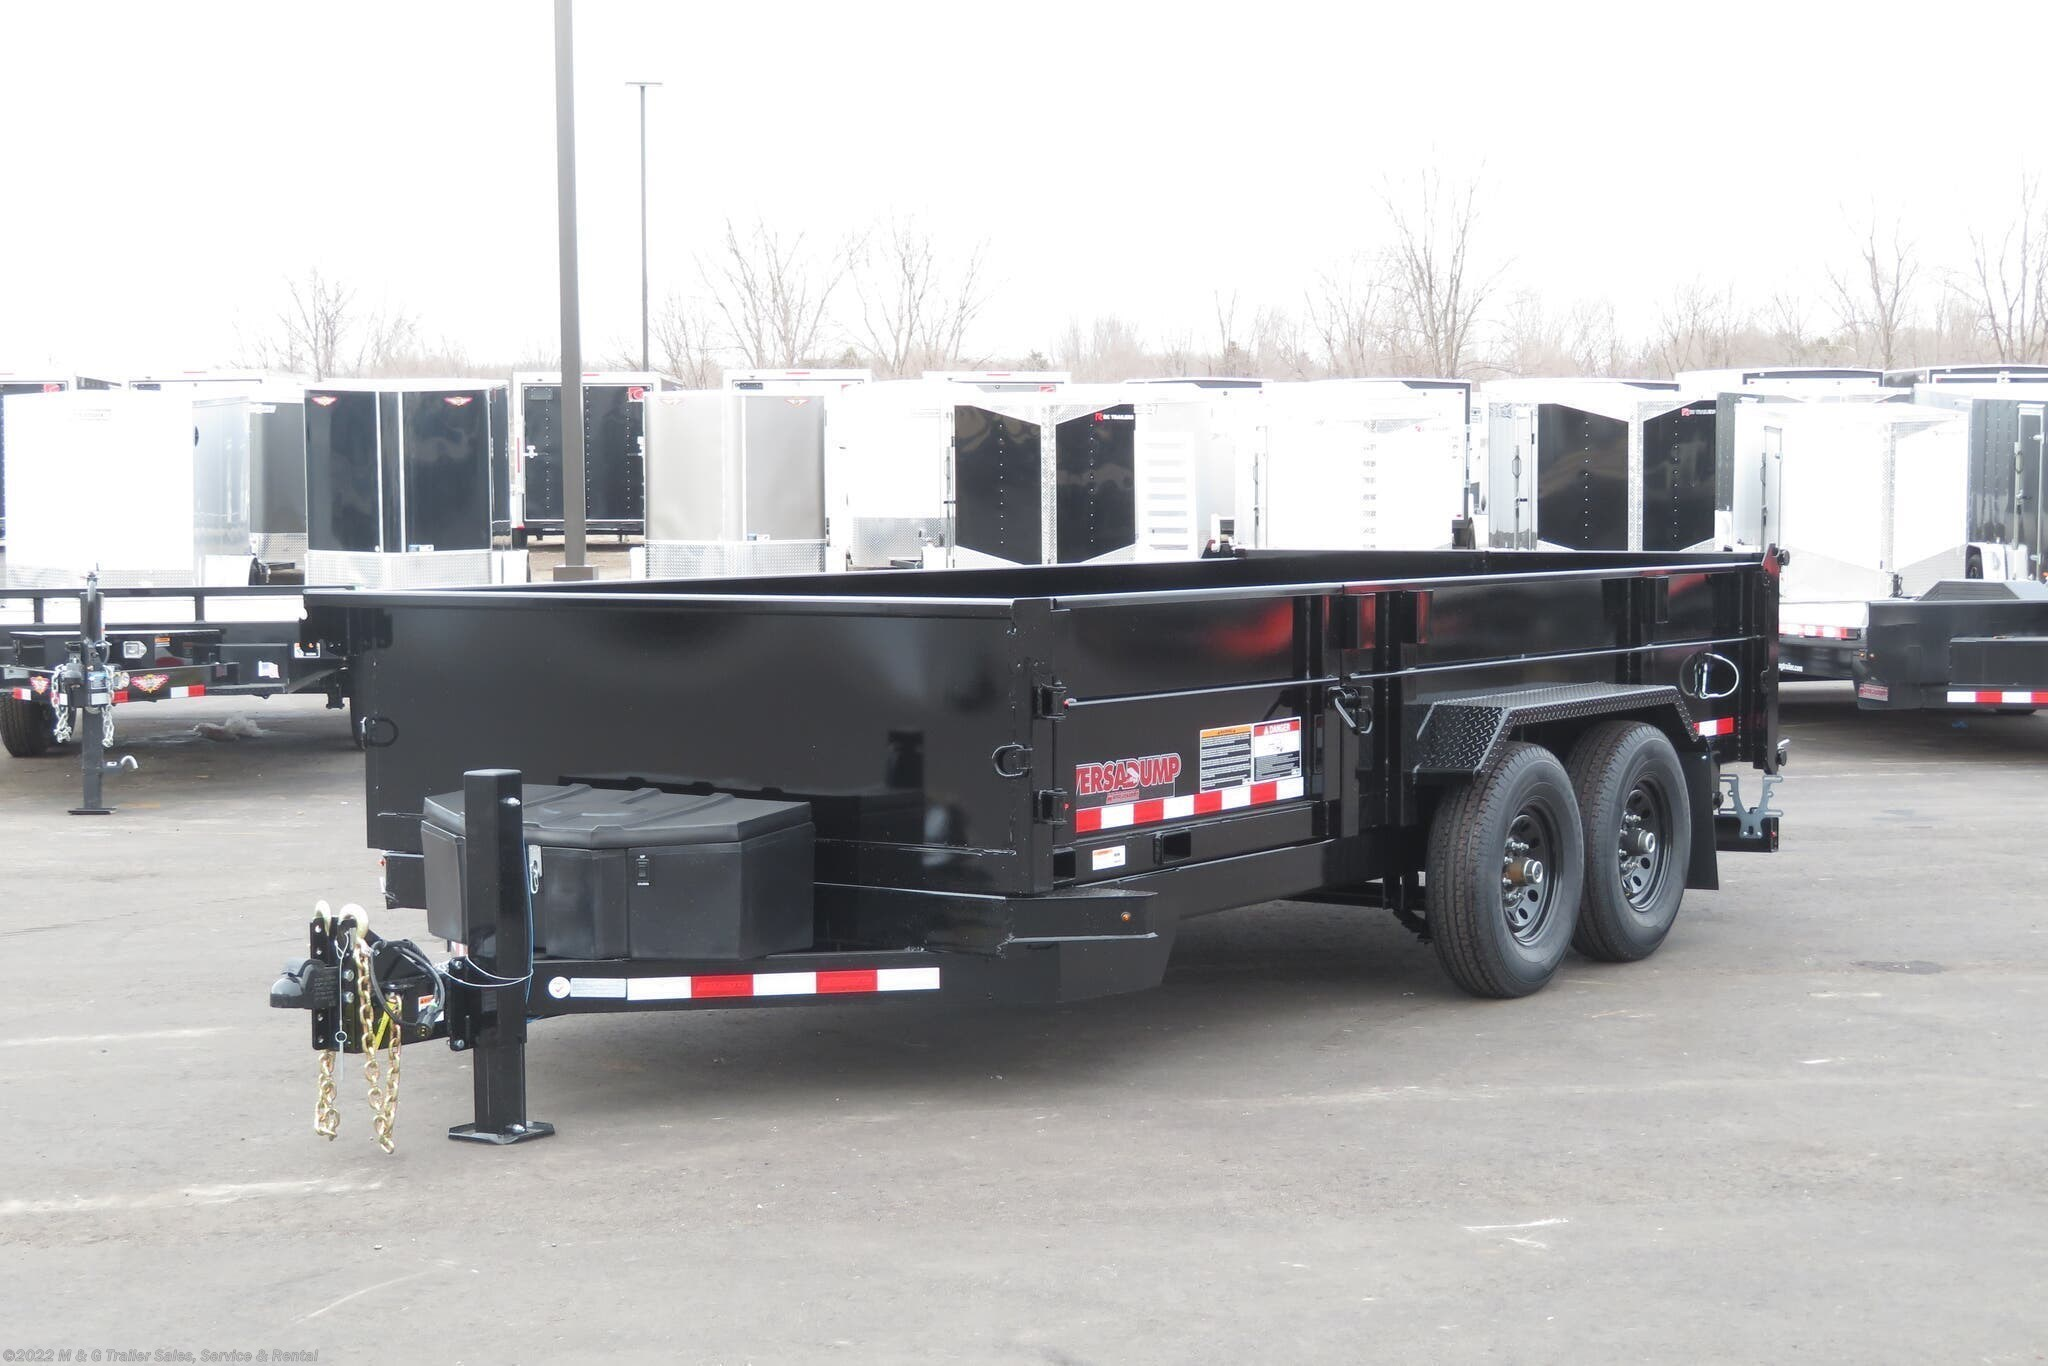 2020 Midsota 14' Dump Trailer - Black - Stock #003262